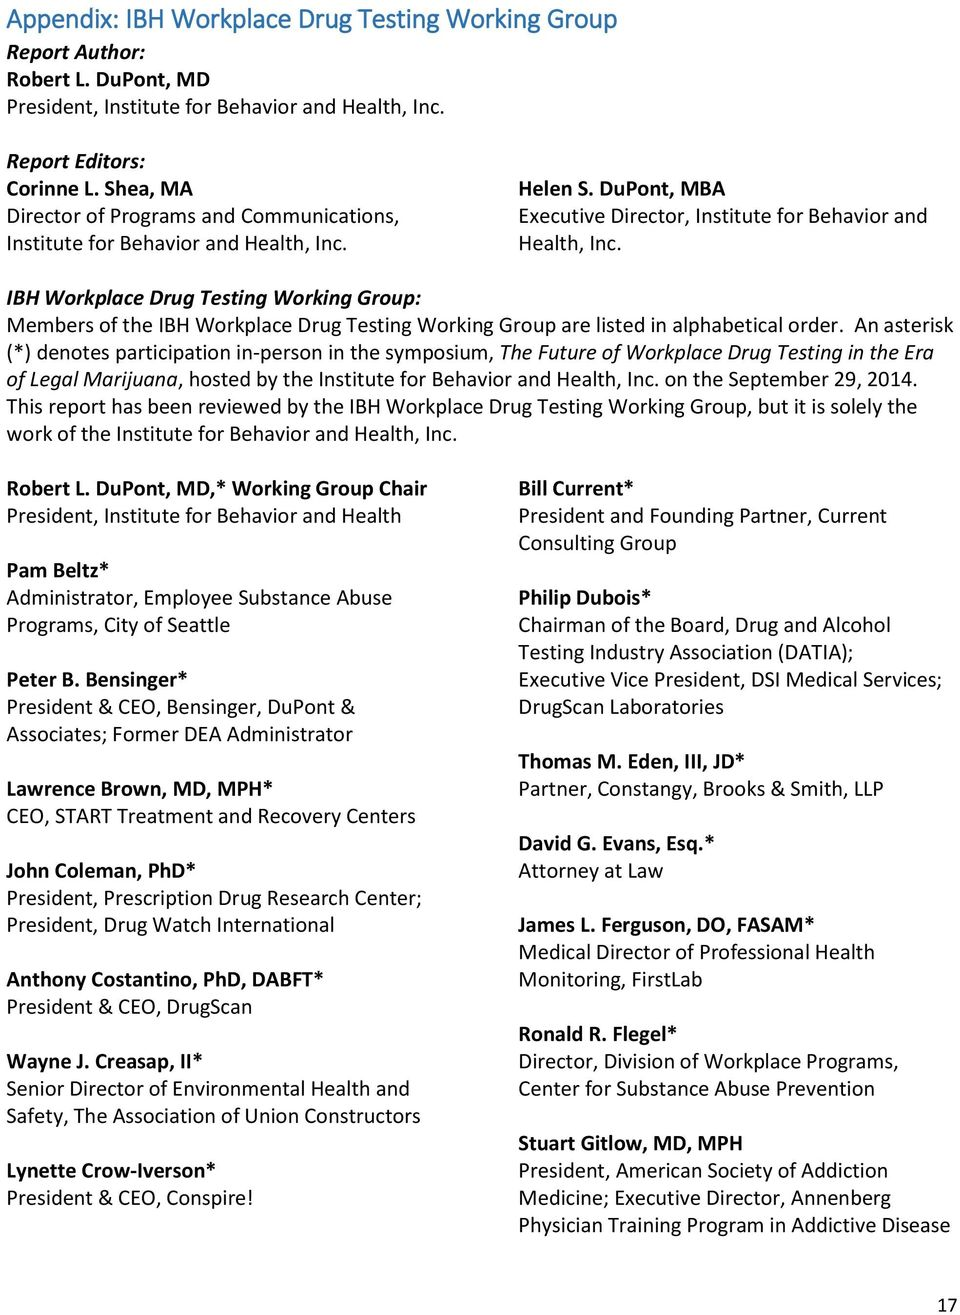 IBH Workplace Drug Testing Working Group: Members of the IBH Workplace Drug Testing Working Group are listed in alphabetical order.